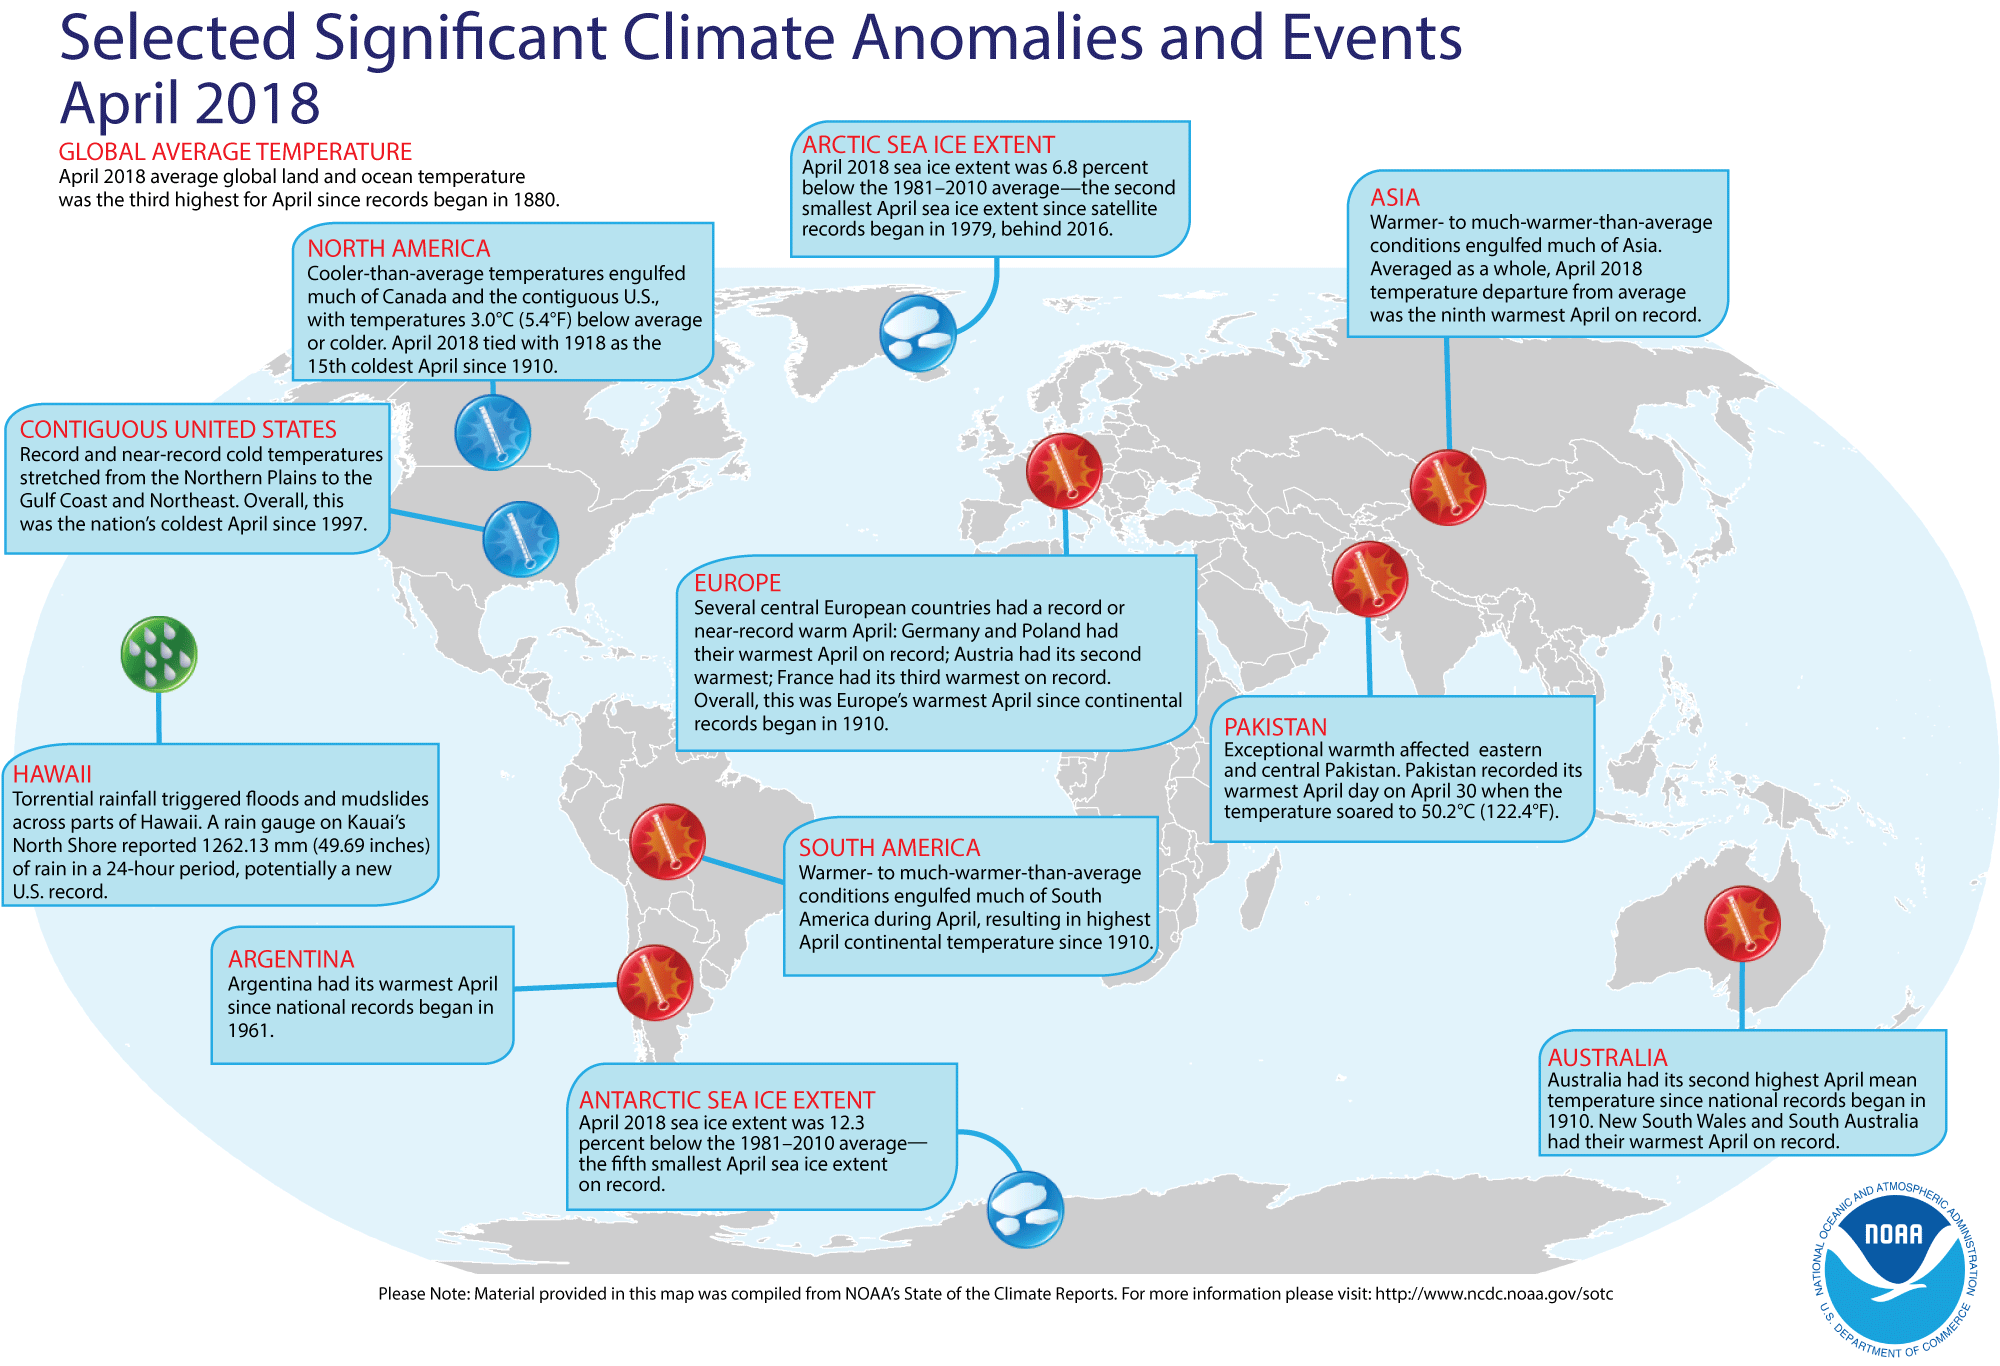 April 2018 average global land and ocean temperature was the third highest for April since records began in 1880. (NOAA)